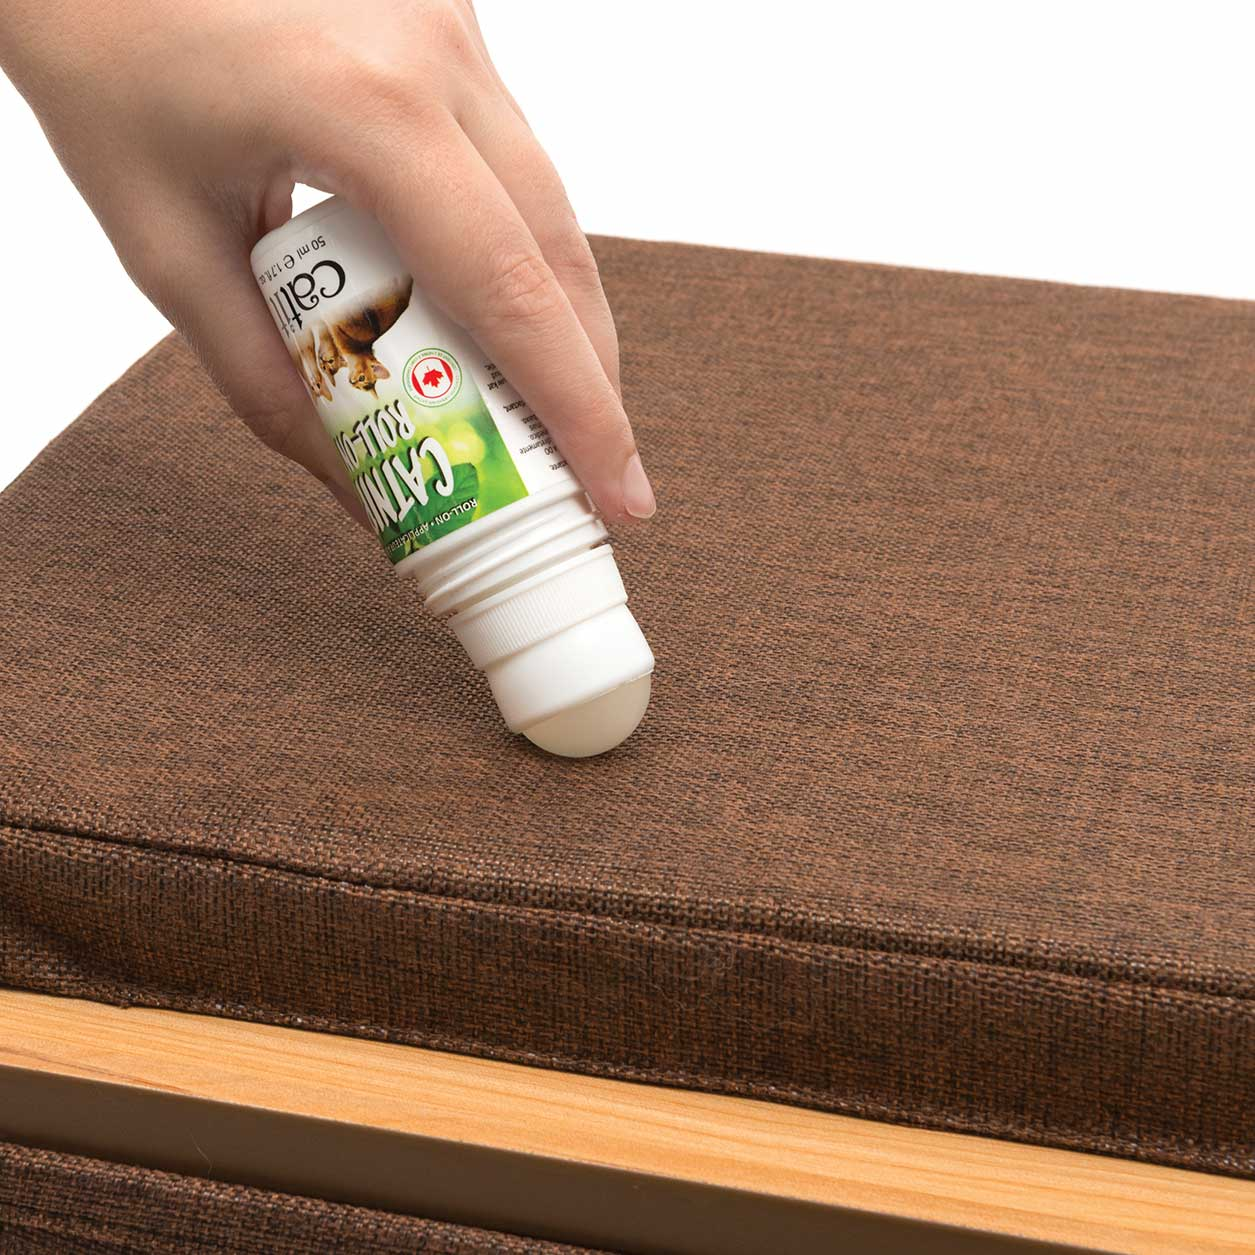 Catnip roller being used on furniture